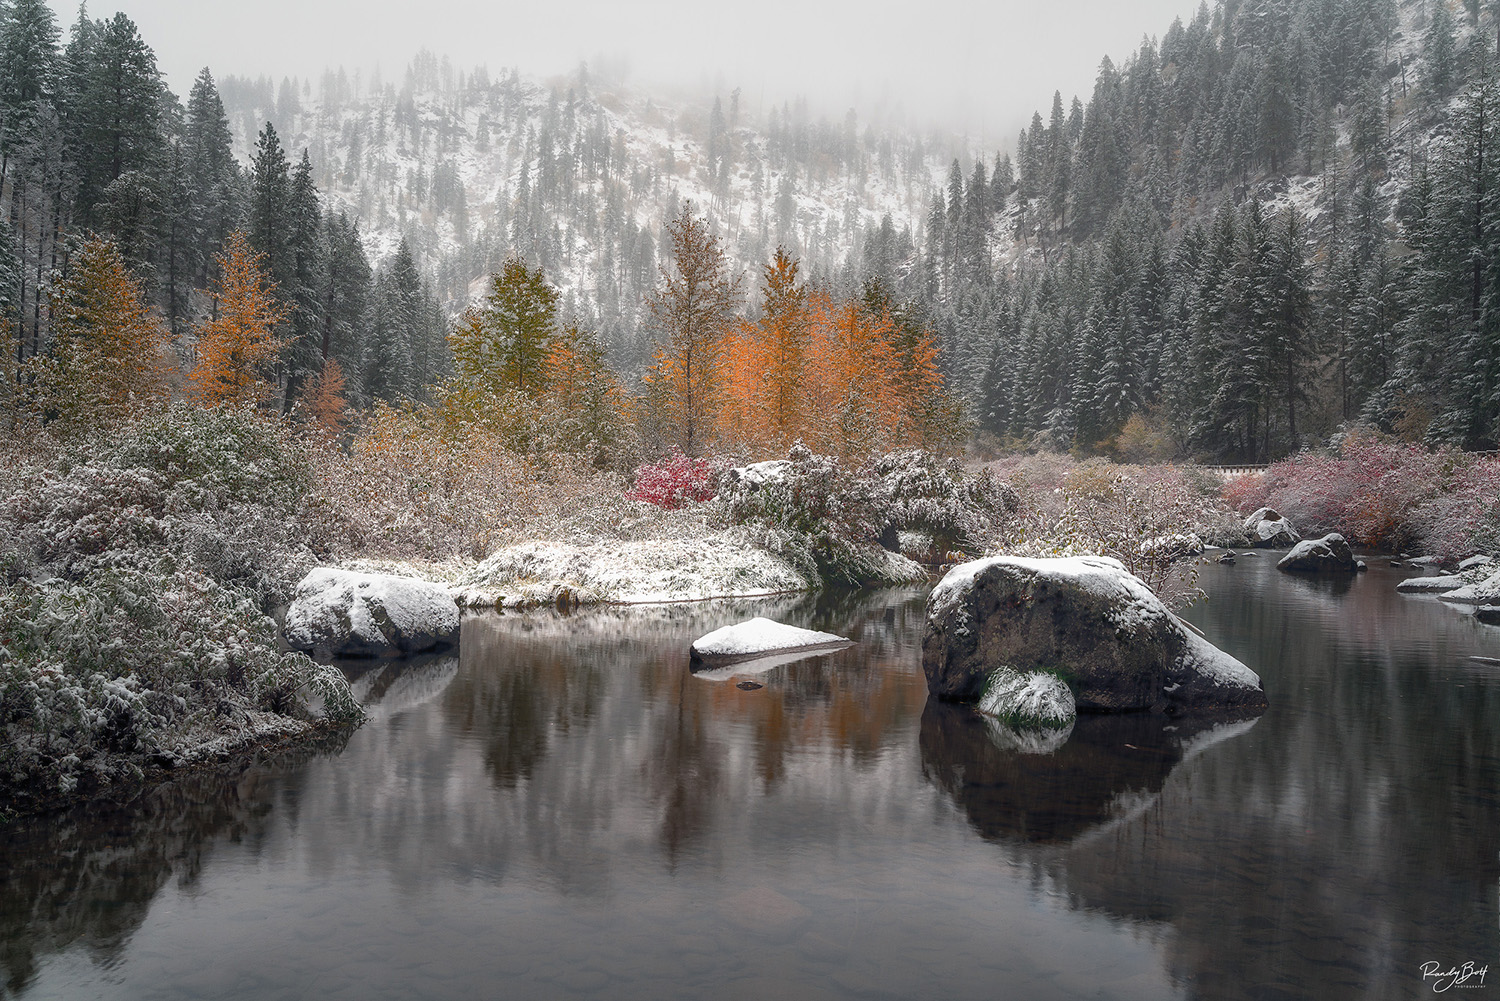 fall color and snow in the Tumwater canyon with snow near Leavenworth, Washington